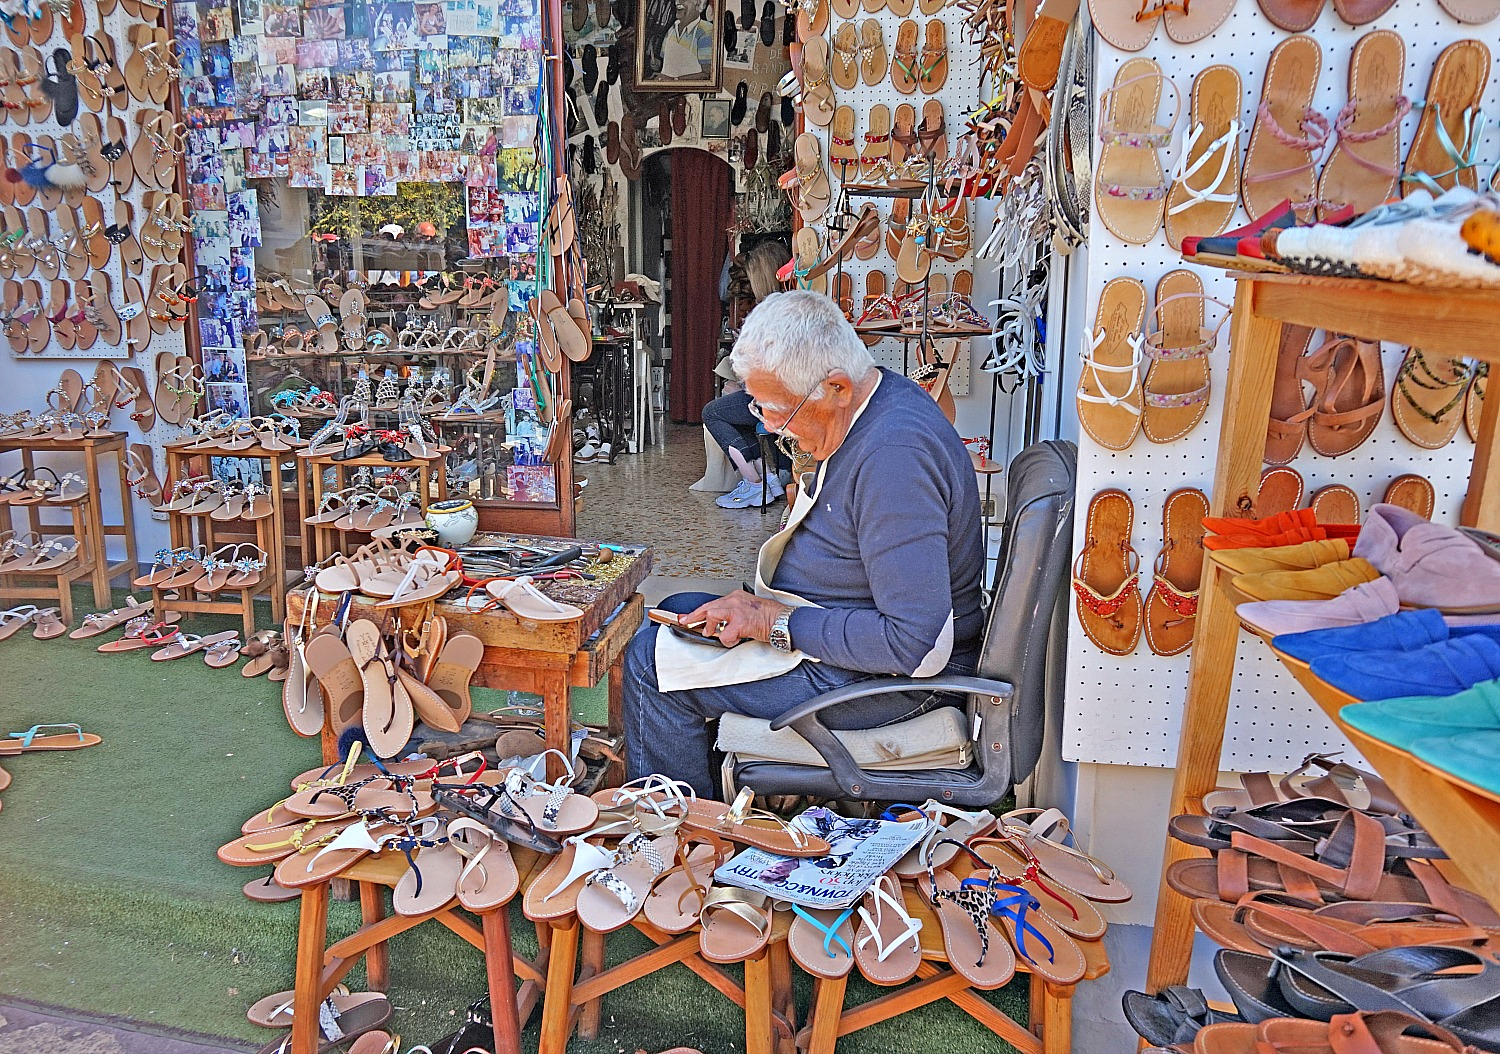 Shoemaking is still alive in Capri.